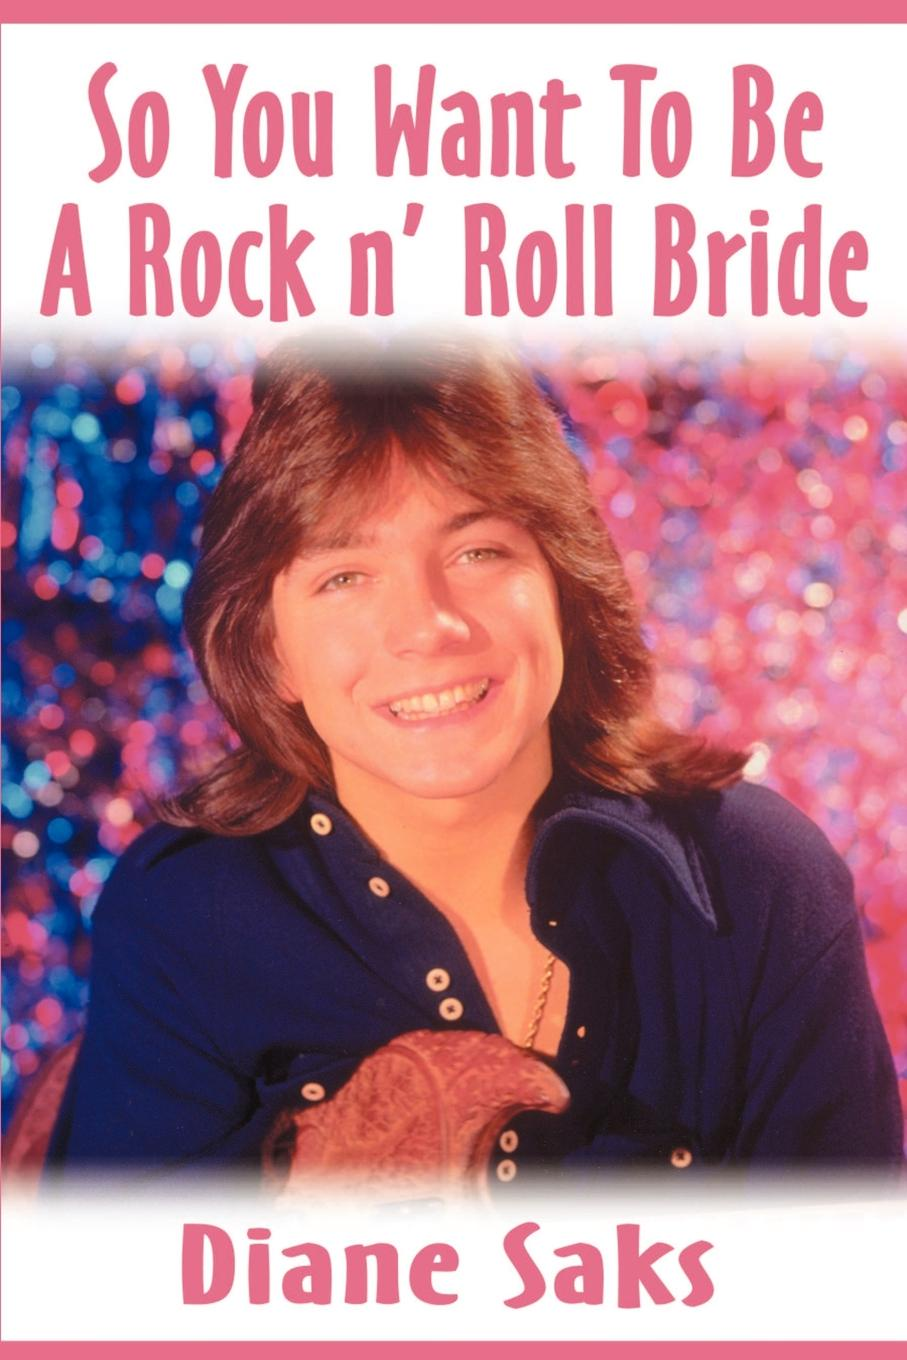 лучшая цена Diane Saks So You Want to Be a Rock N' Roll Bride